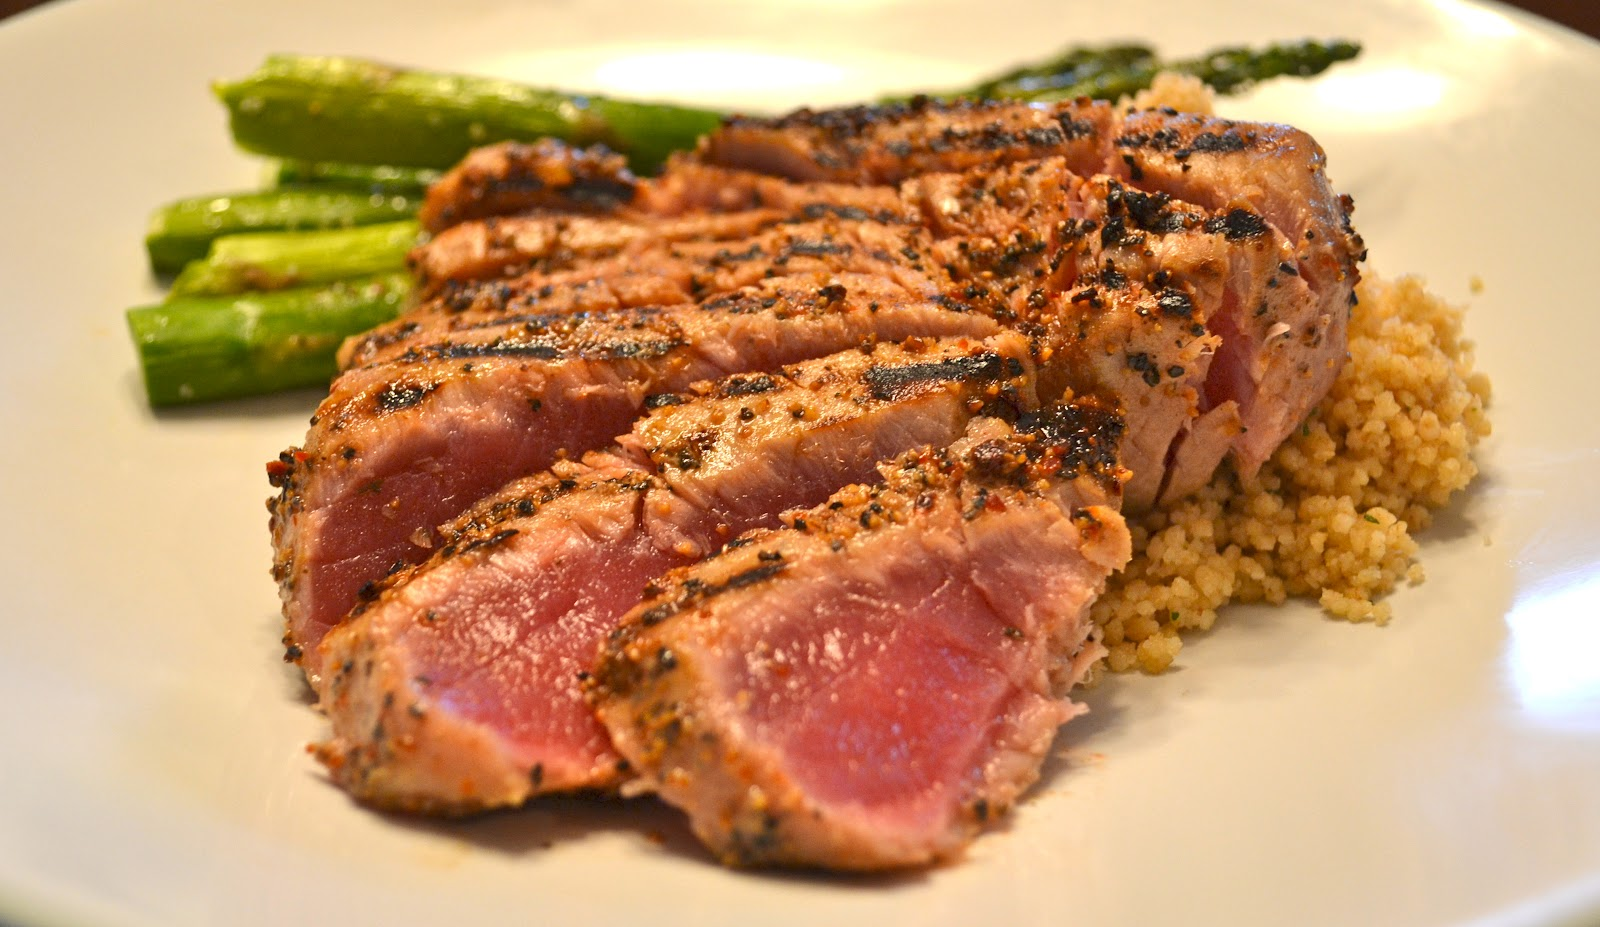 Tuna Steak with Vegetables